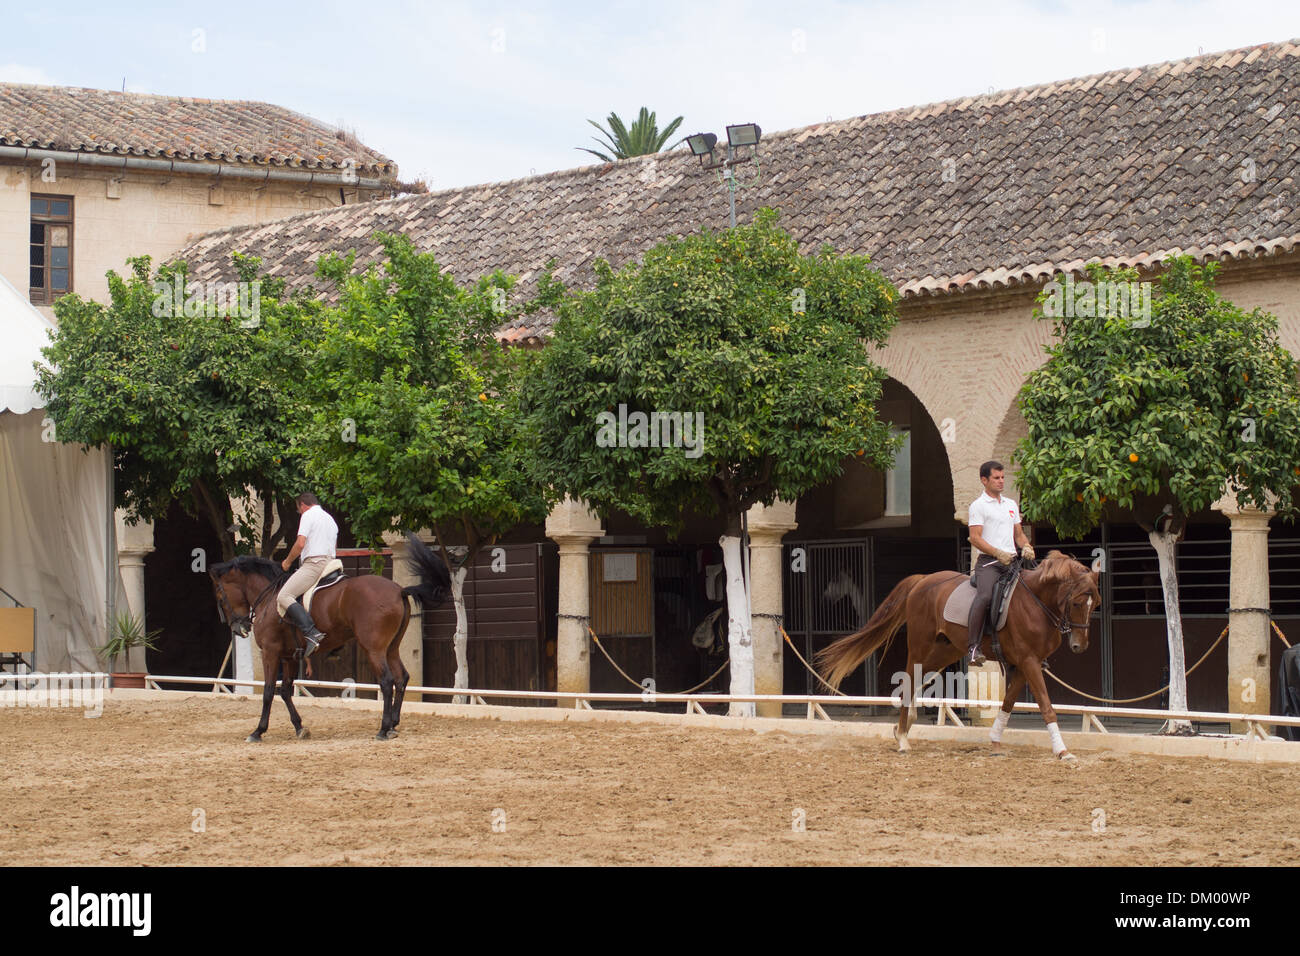 Royal Stables, Cordoba, Andalucia, Spain - Stock Image